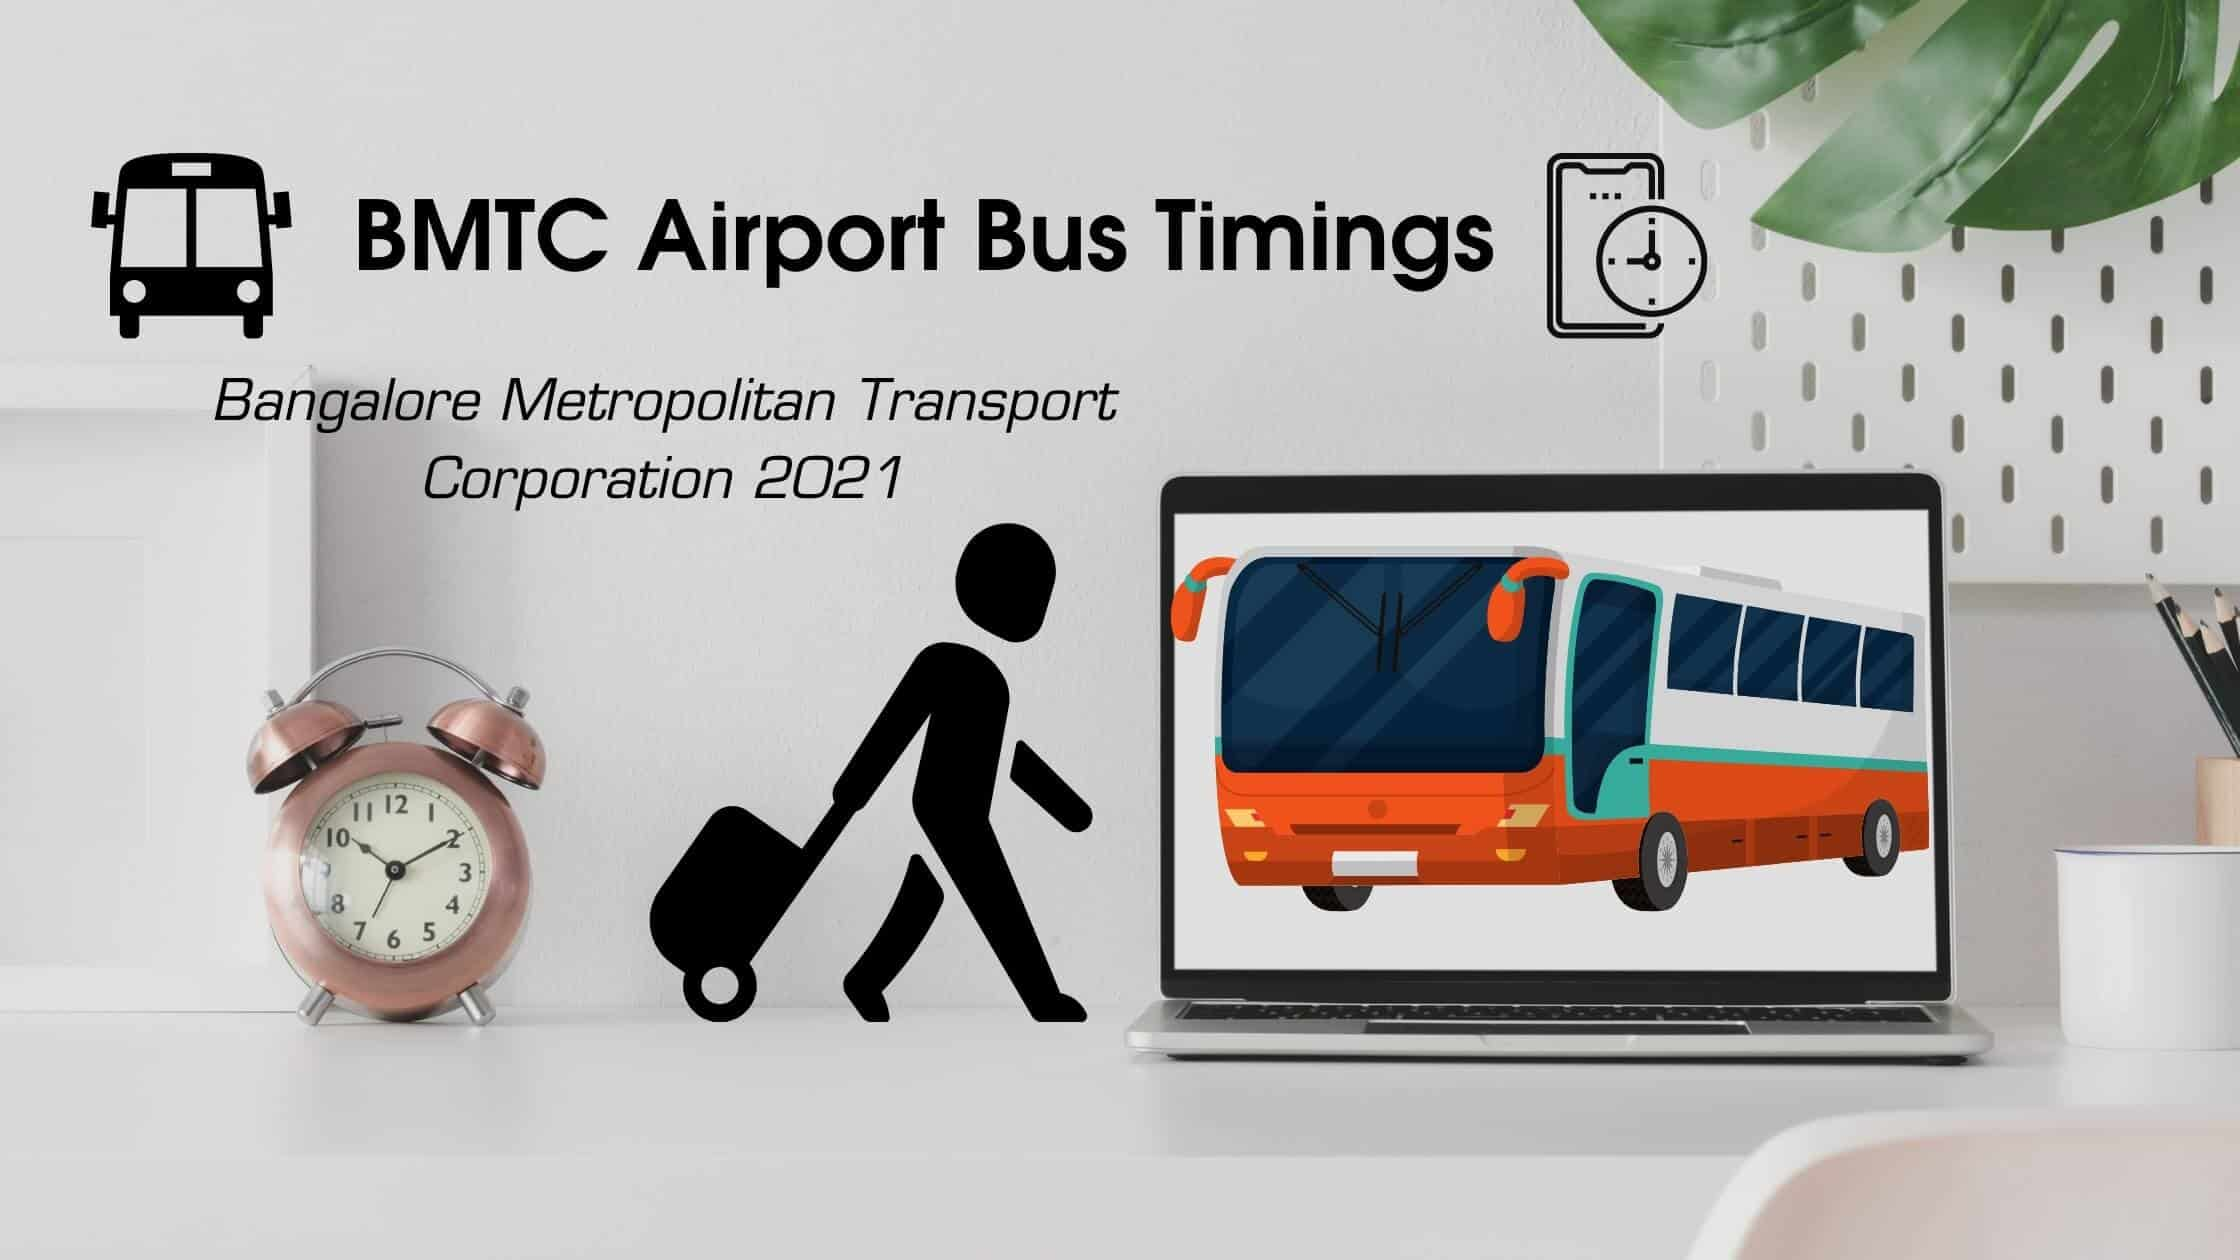 BMTC Airport Bus Timings